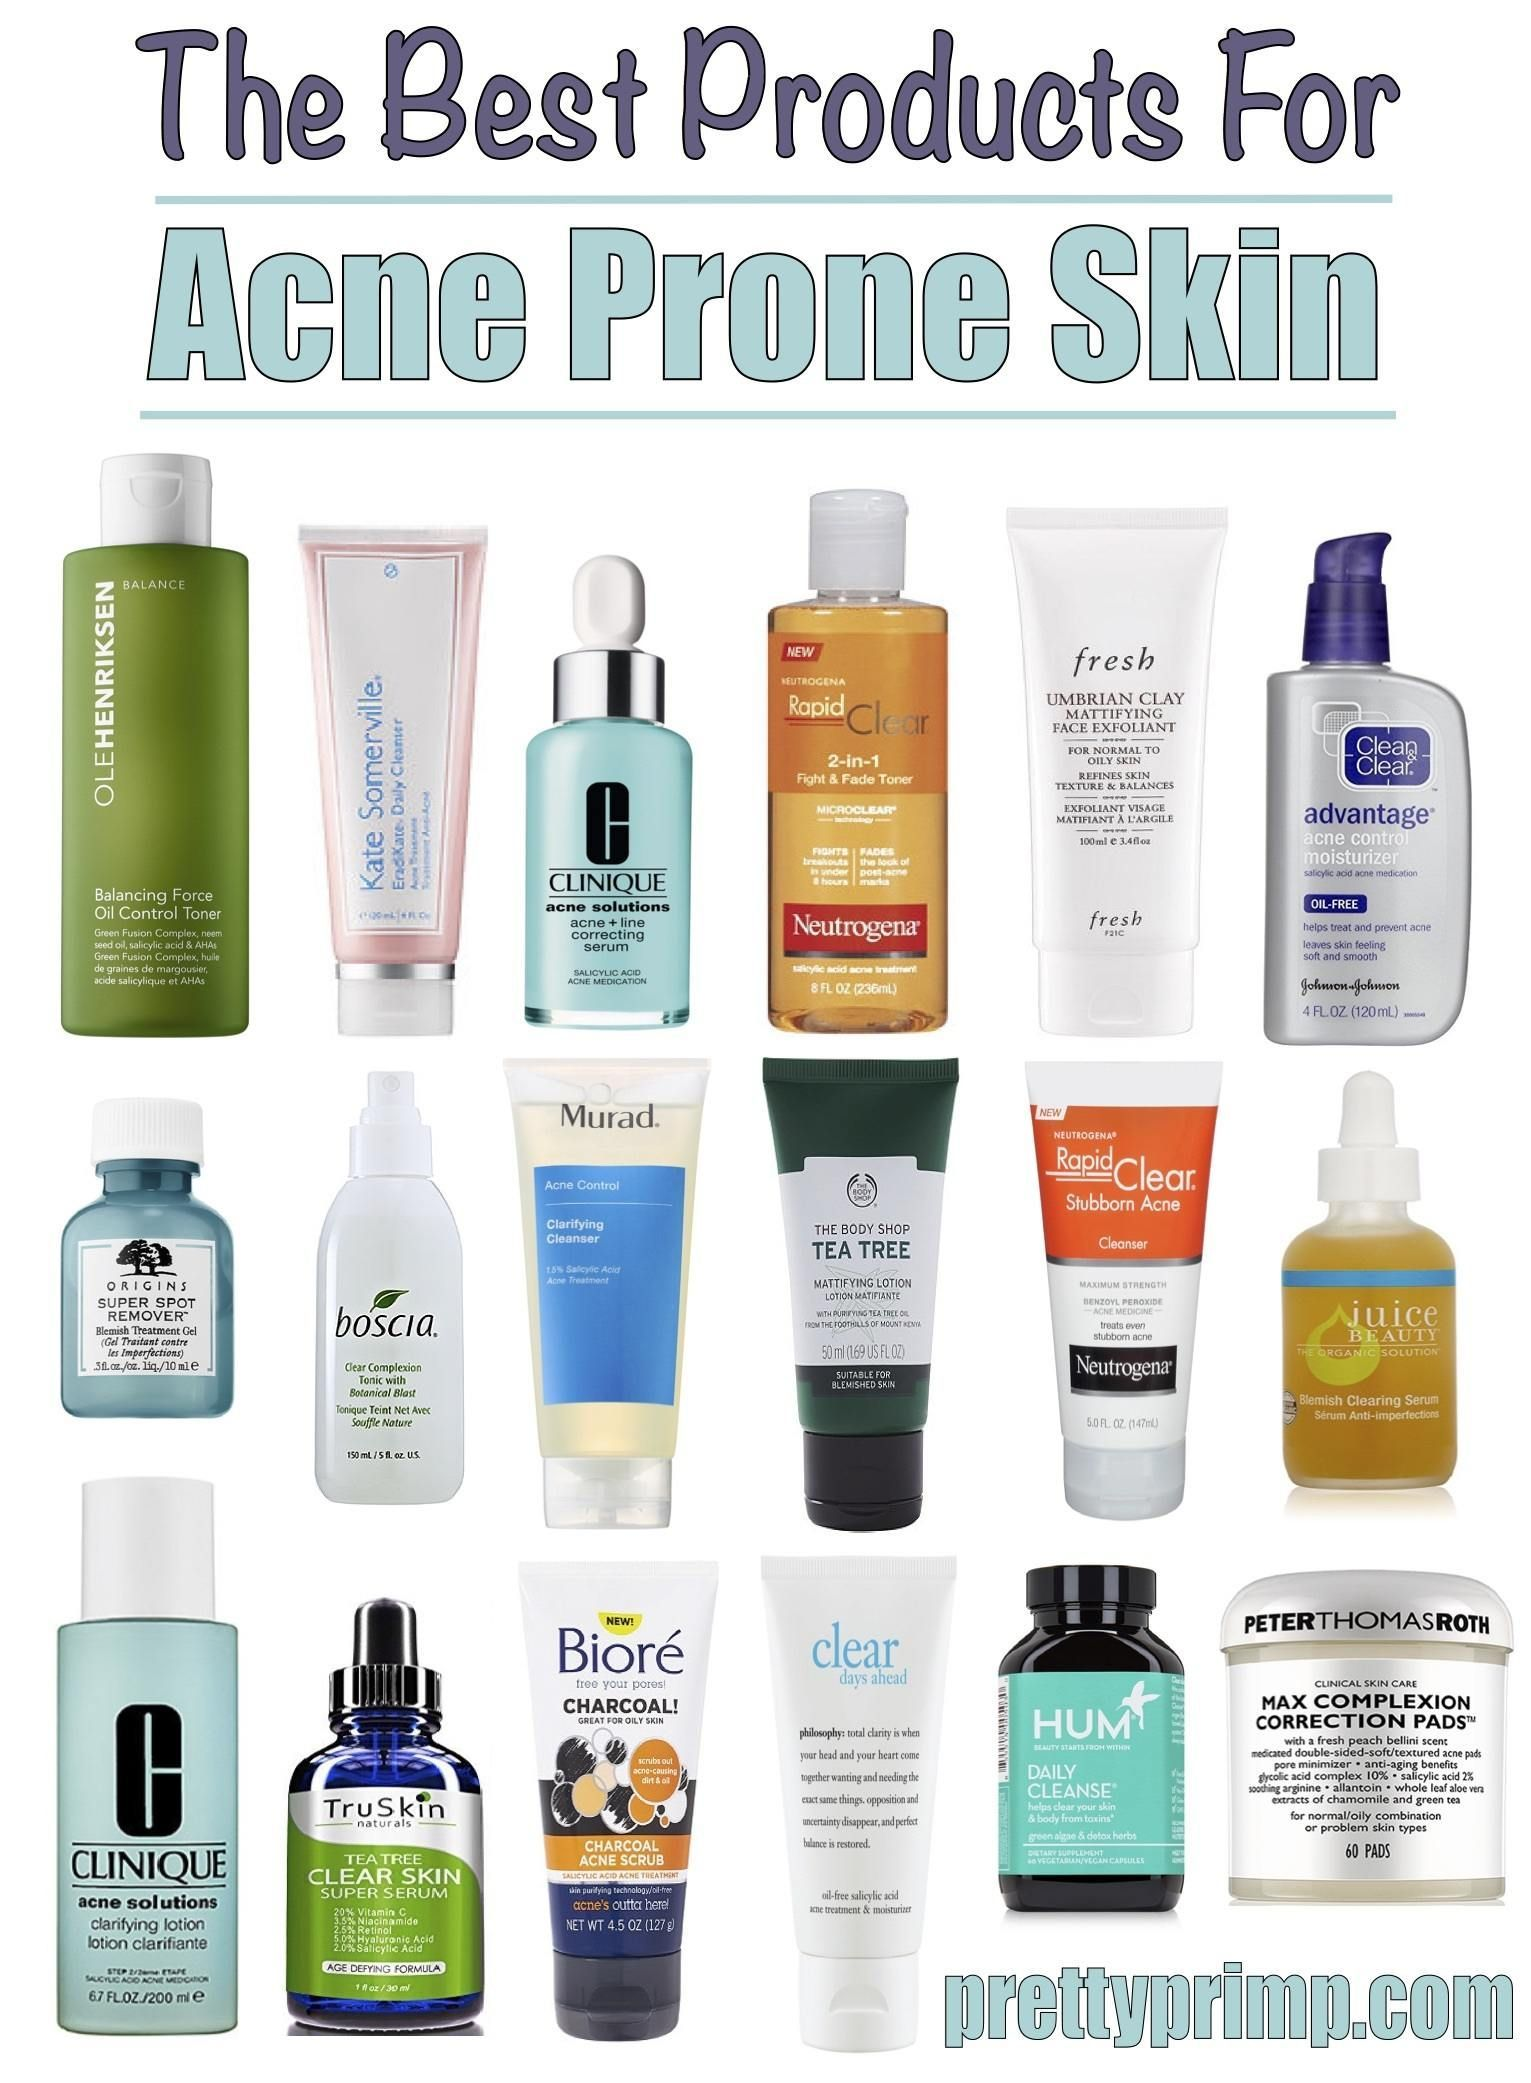 Acne Banish Best Skin Care Products Skincare Routine Drugstore Beauty Oily Pimples Products Pro In 2020 Best Acne Products Acne Solutions Best Skincare Products